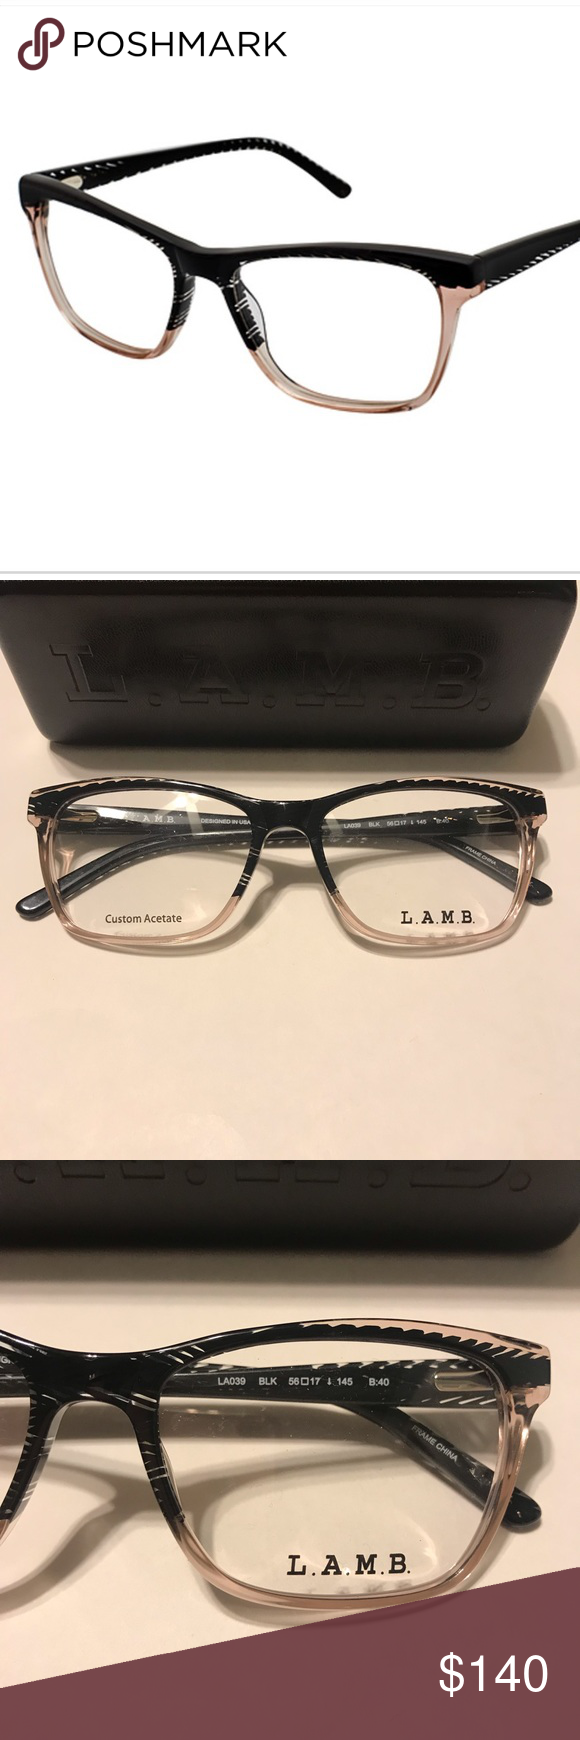 8a8cb9e1b47 LAMB Gwen Stefani Rx-able Frame Glasses New. Never worn. Perfect condition.